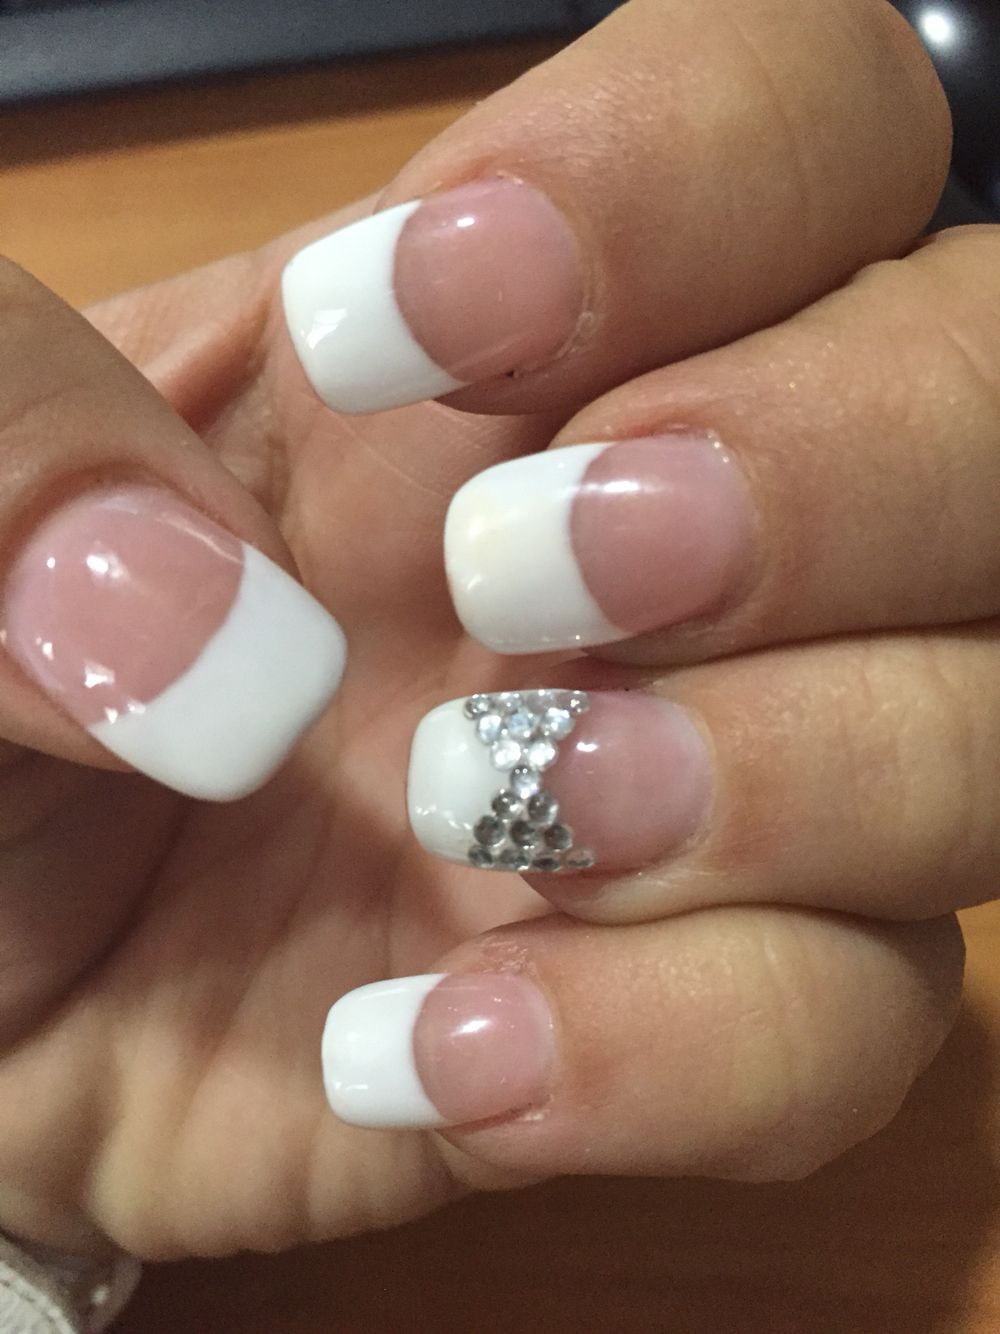 French Manicure With Accent Nail Rhinestone Design French Acrylic Nail Designs French Acrylic Nails French Manicure Nails